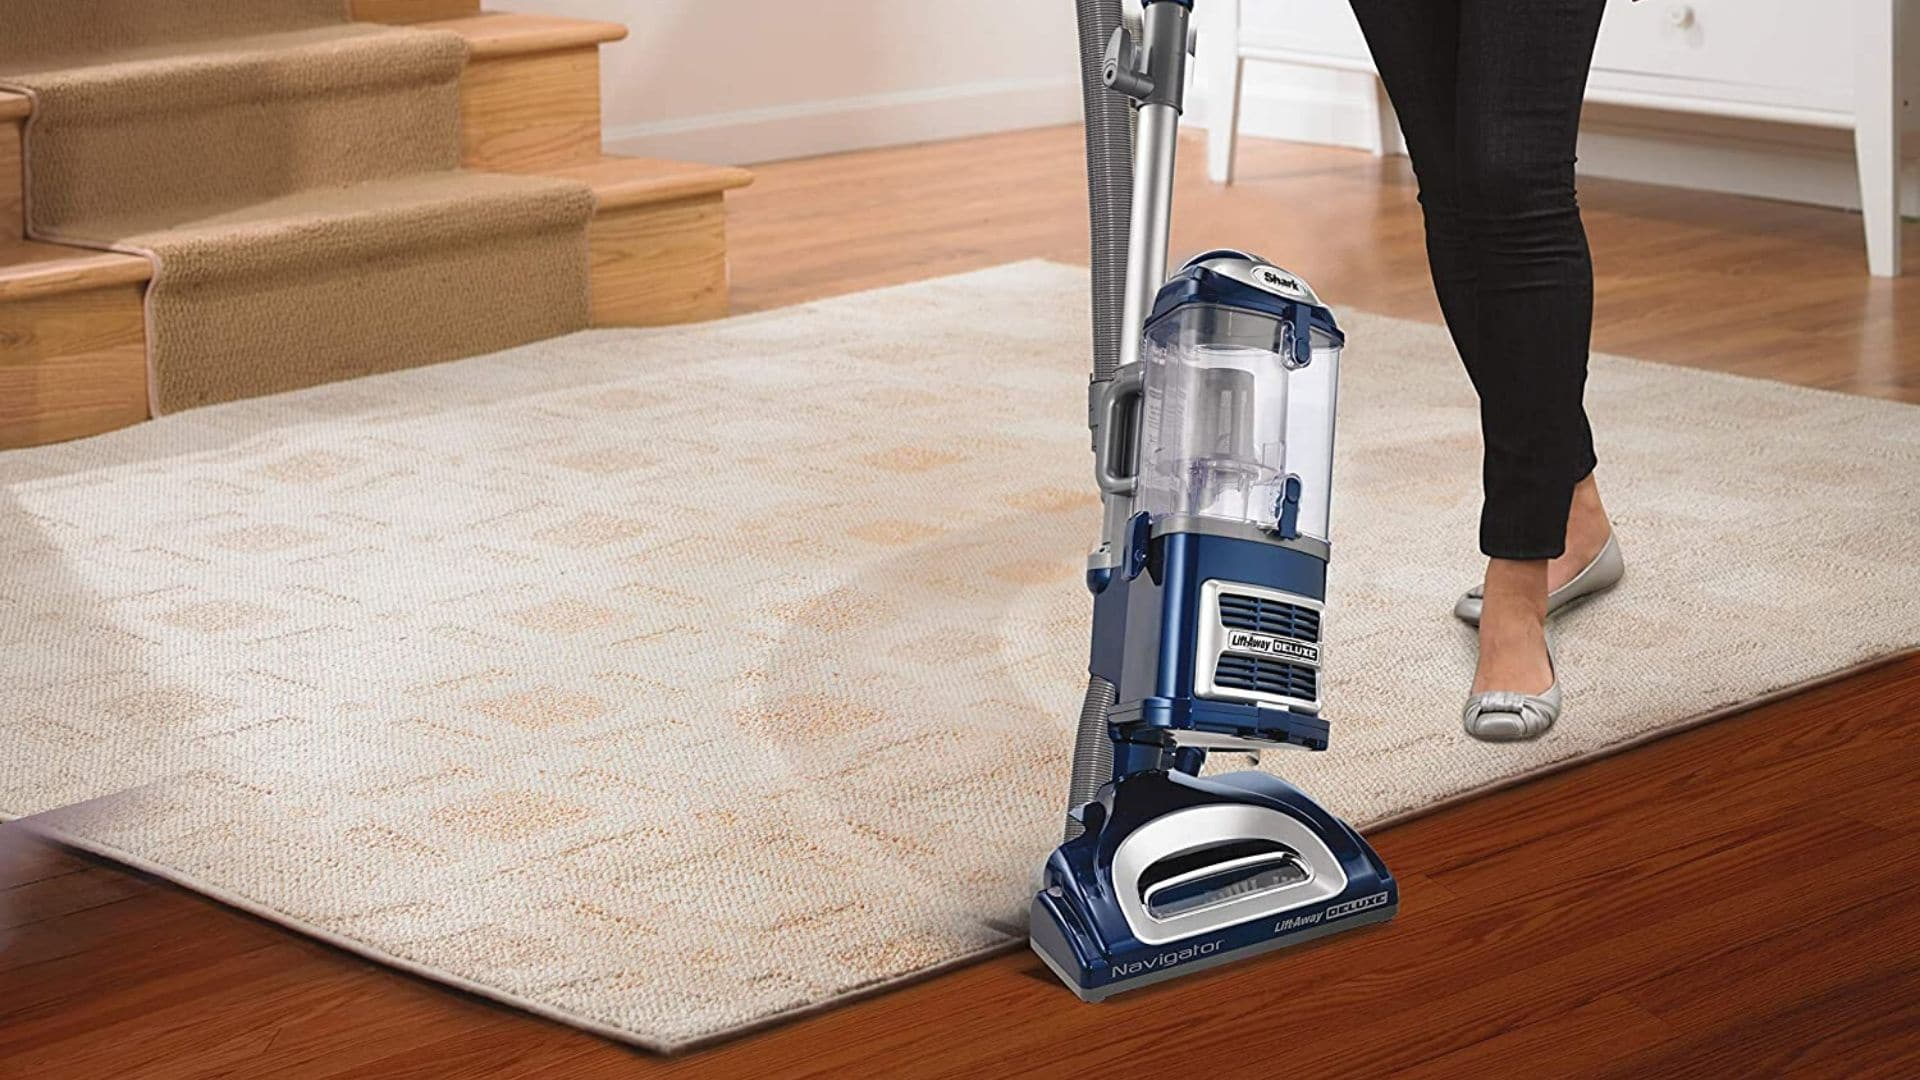 picture of woman using the shark navigator lift away deluxe nv360 upright vacuum cleaner upholstery tool to clean carpet and hard wood floor